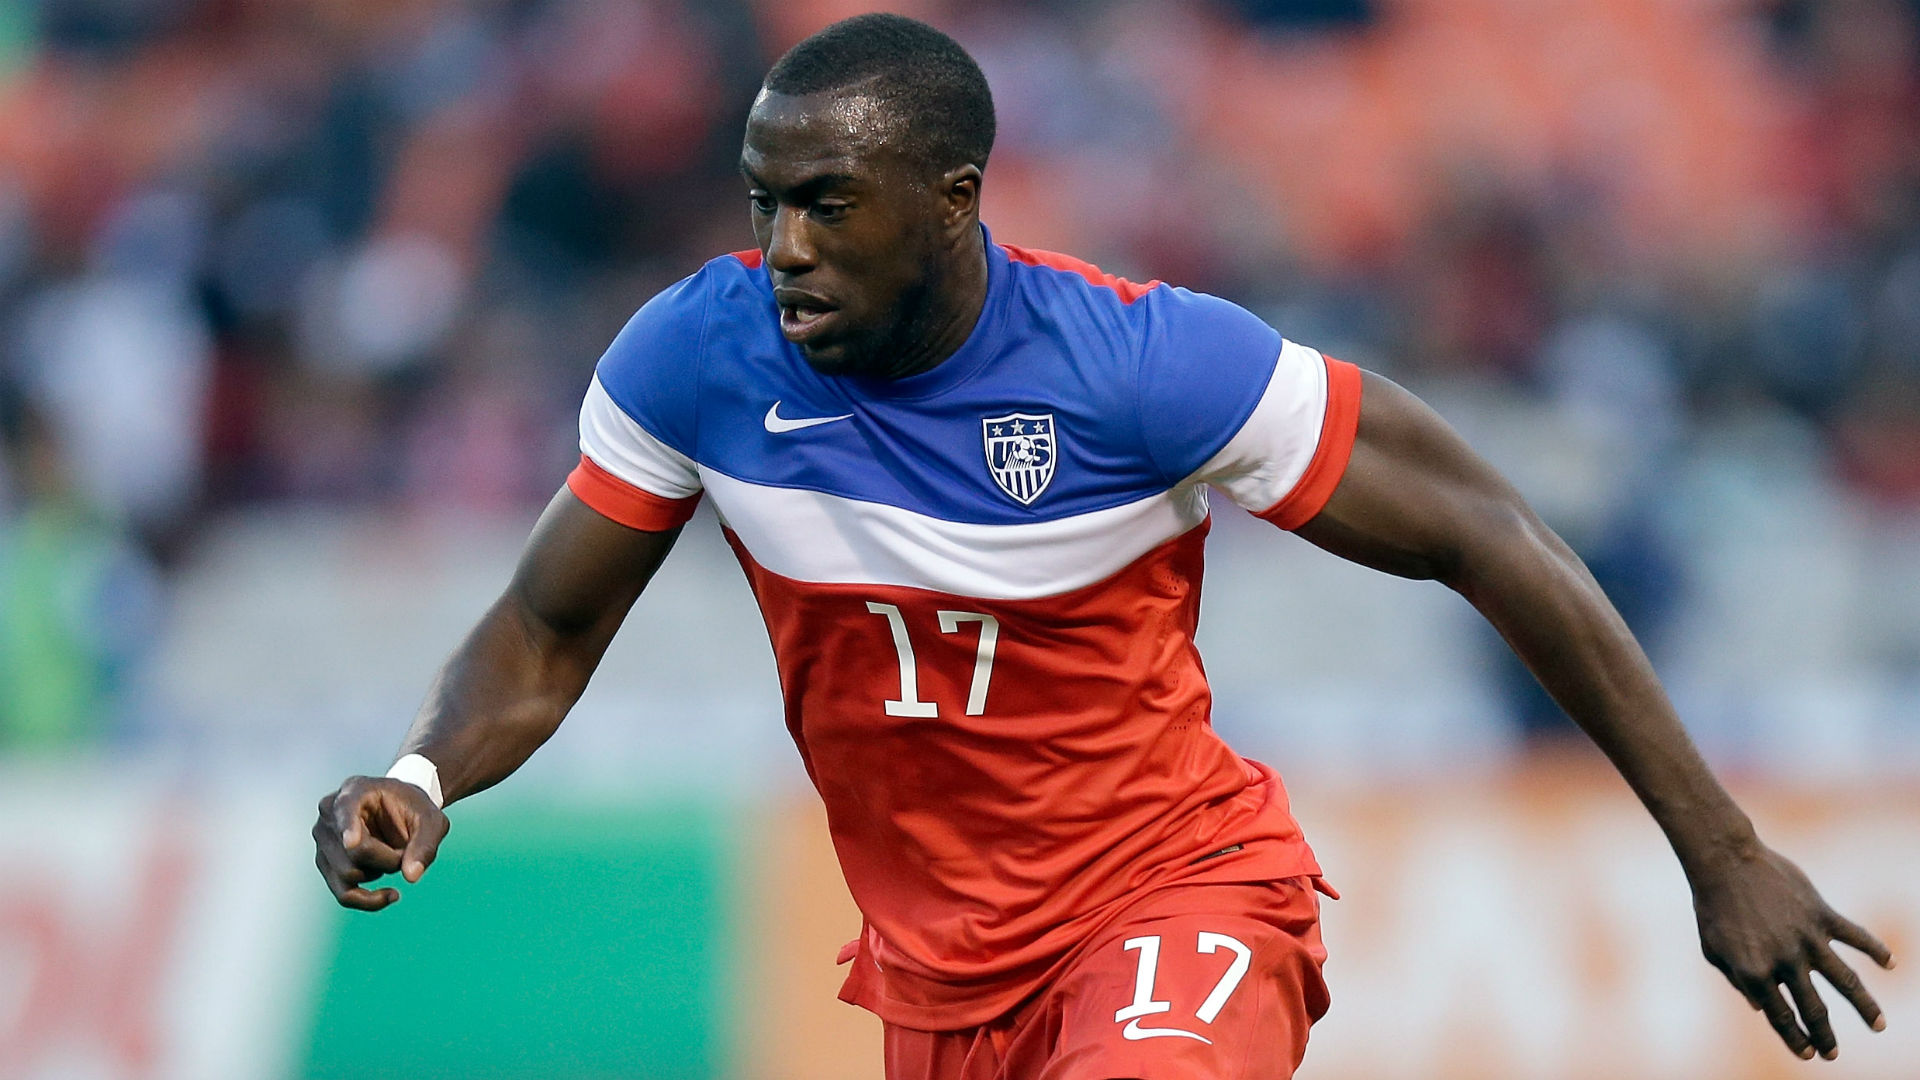 USA vs. Honduras odds and pick – Look for Americans to continue scoring run